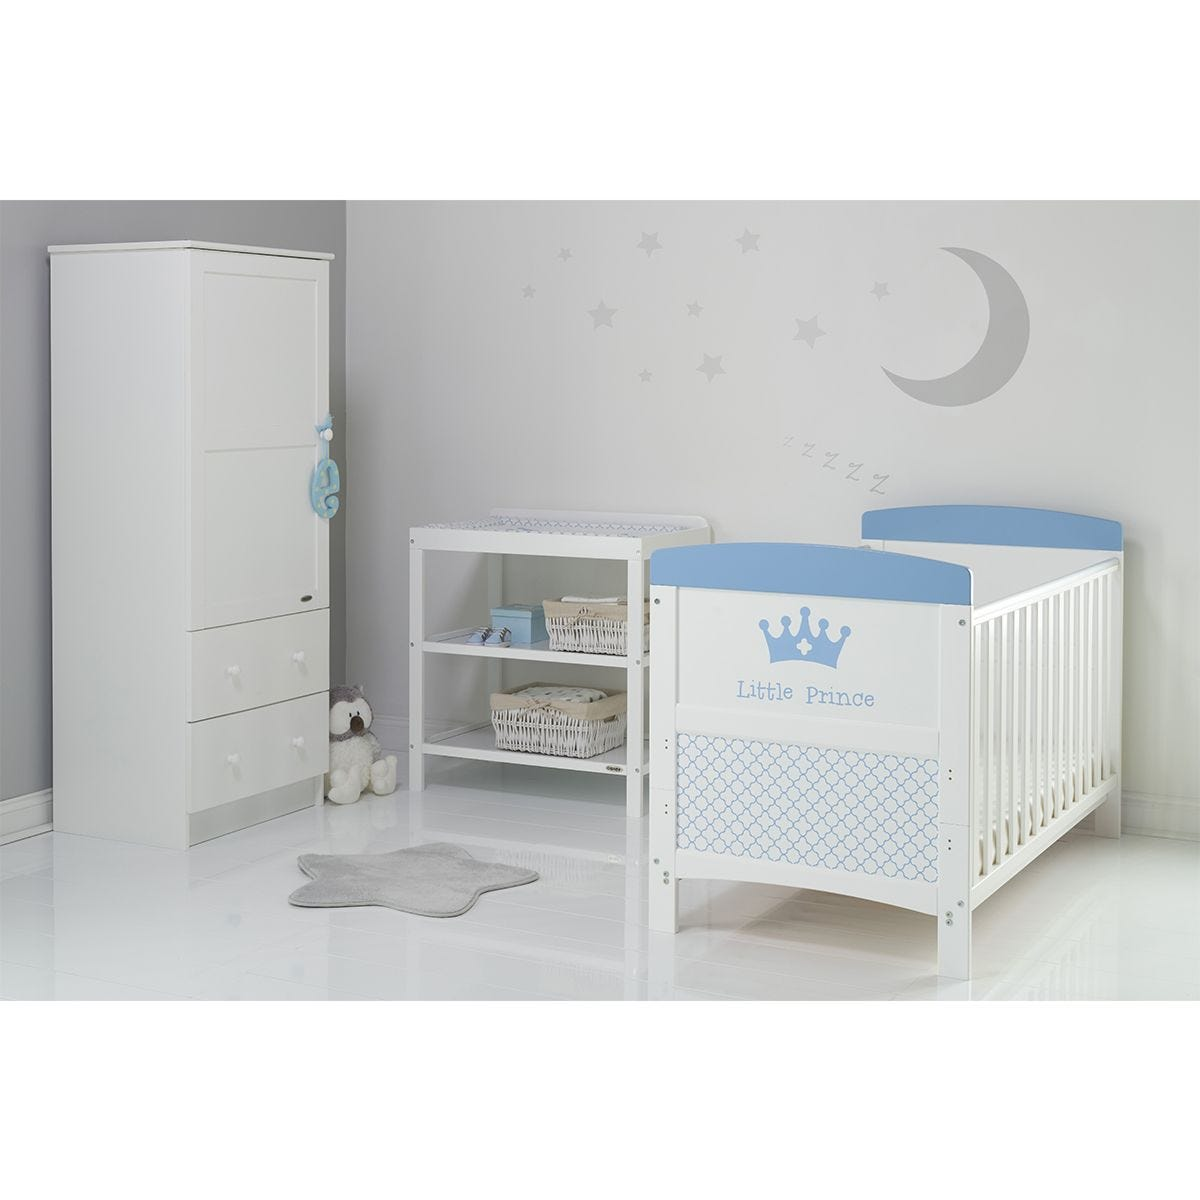 Obaby Grace Inspire 3 Piece Room Set & Changing Mat - Little Prince